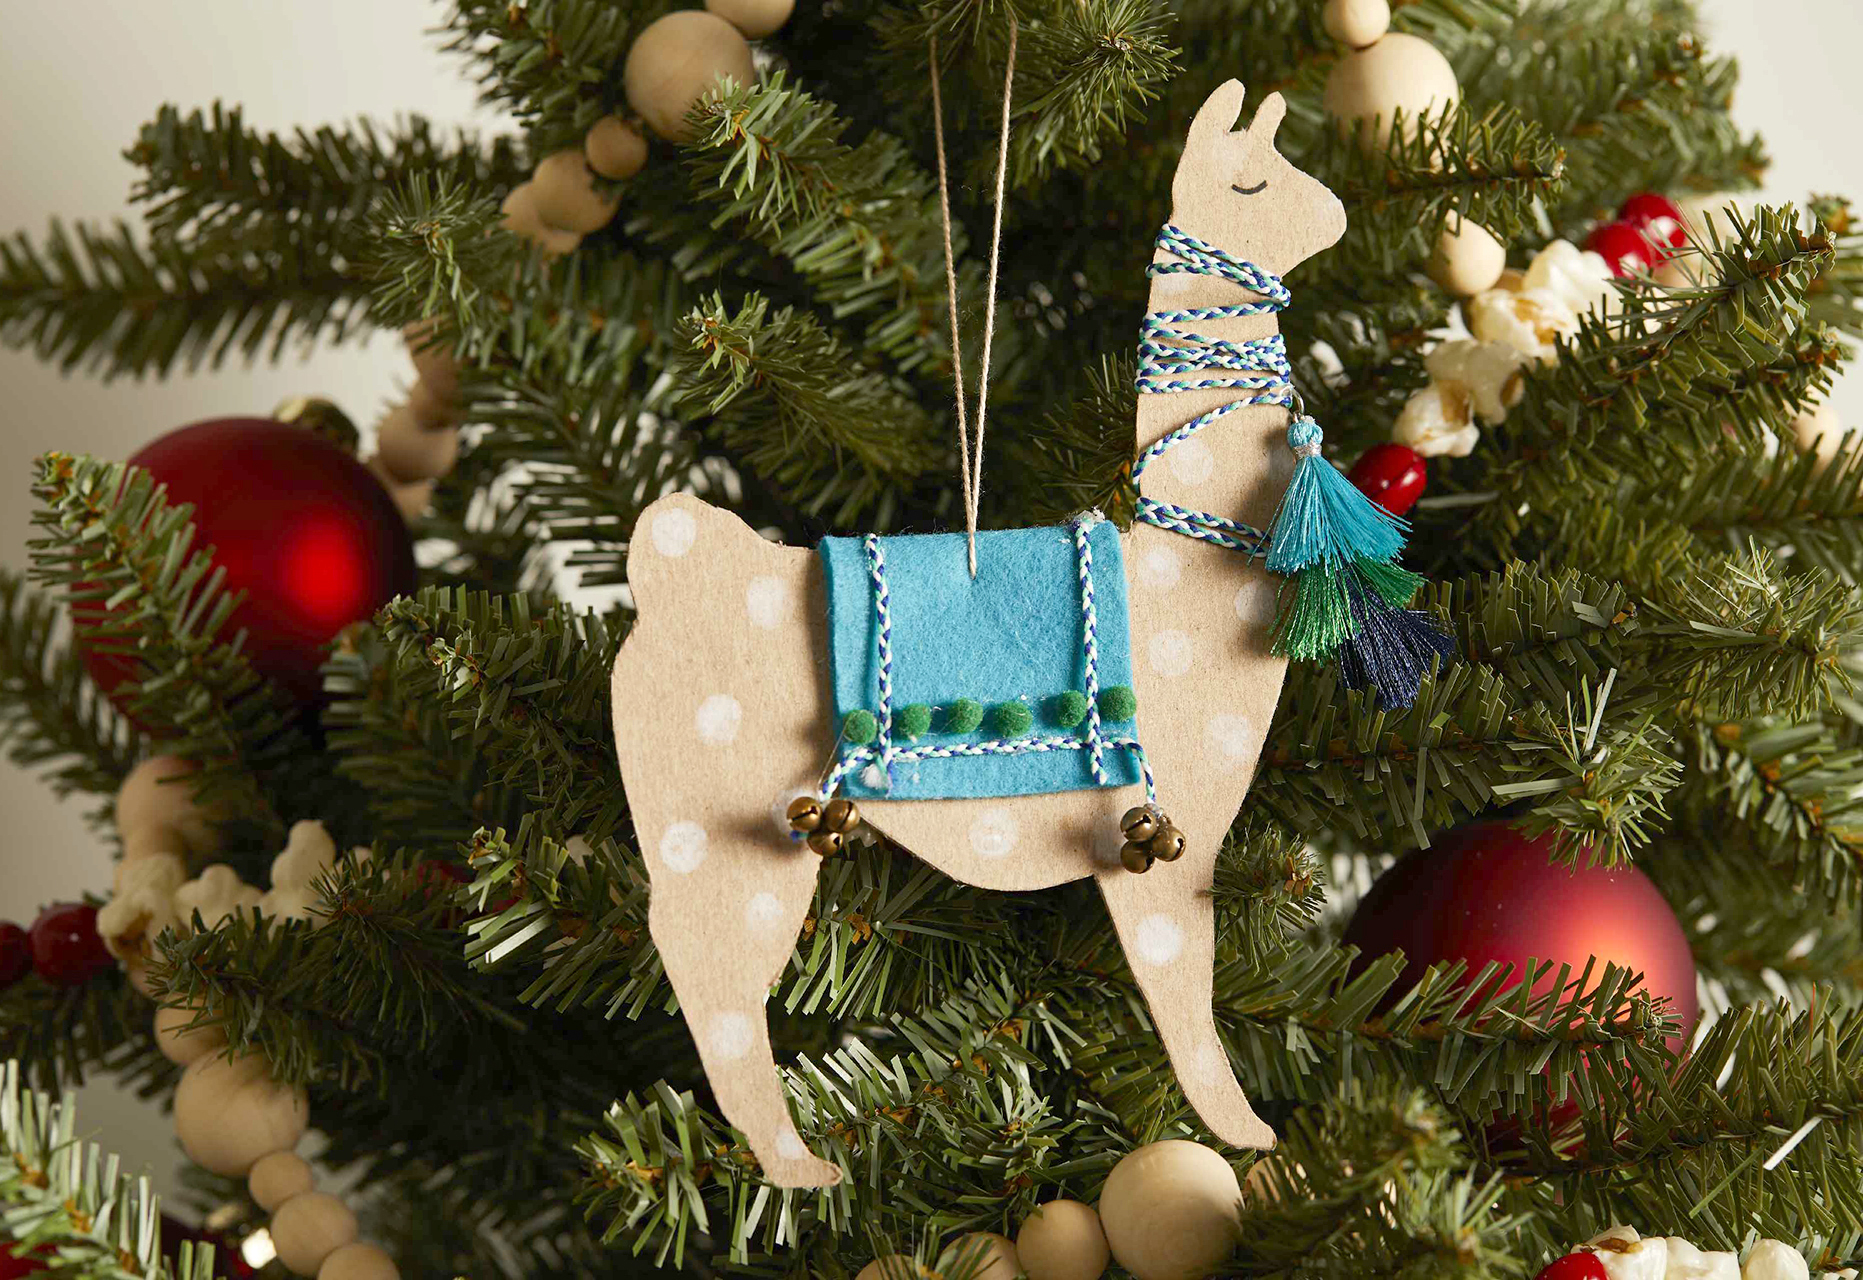 cardboard and felt painted llama handmade ornament